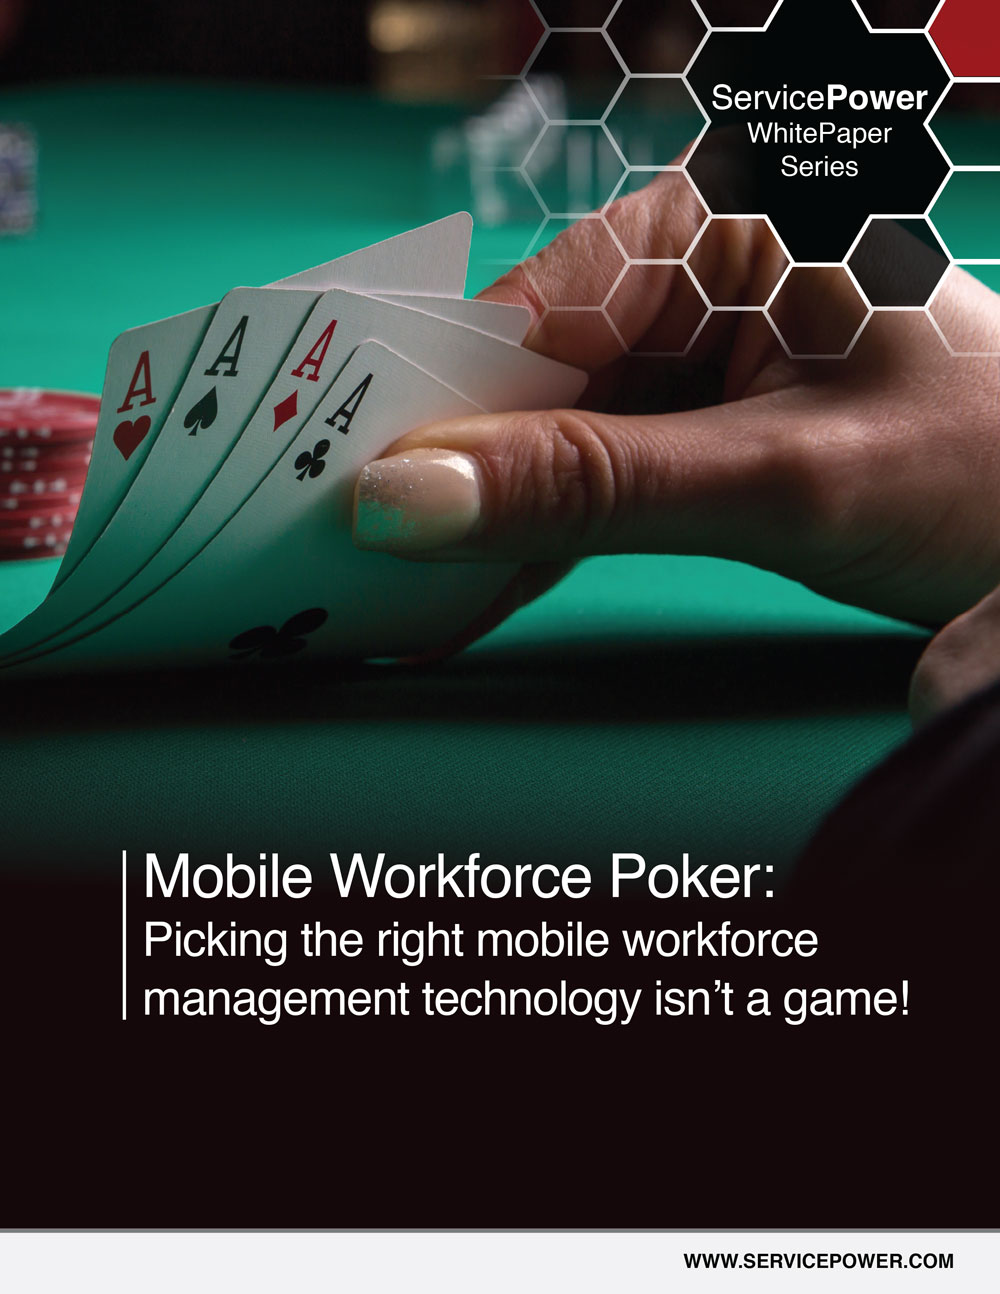 Free White Paper - Picking the Right Mobile Workforce Management Technology Isn't a Game!